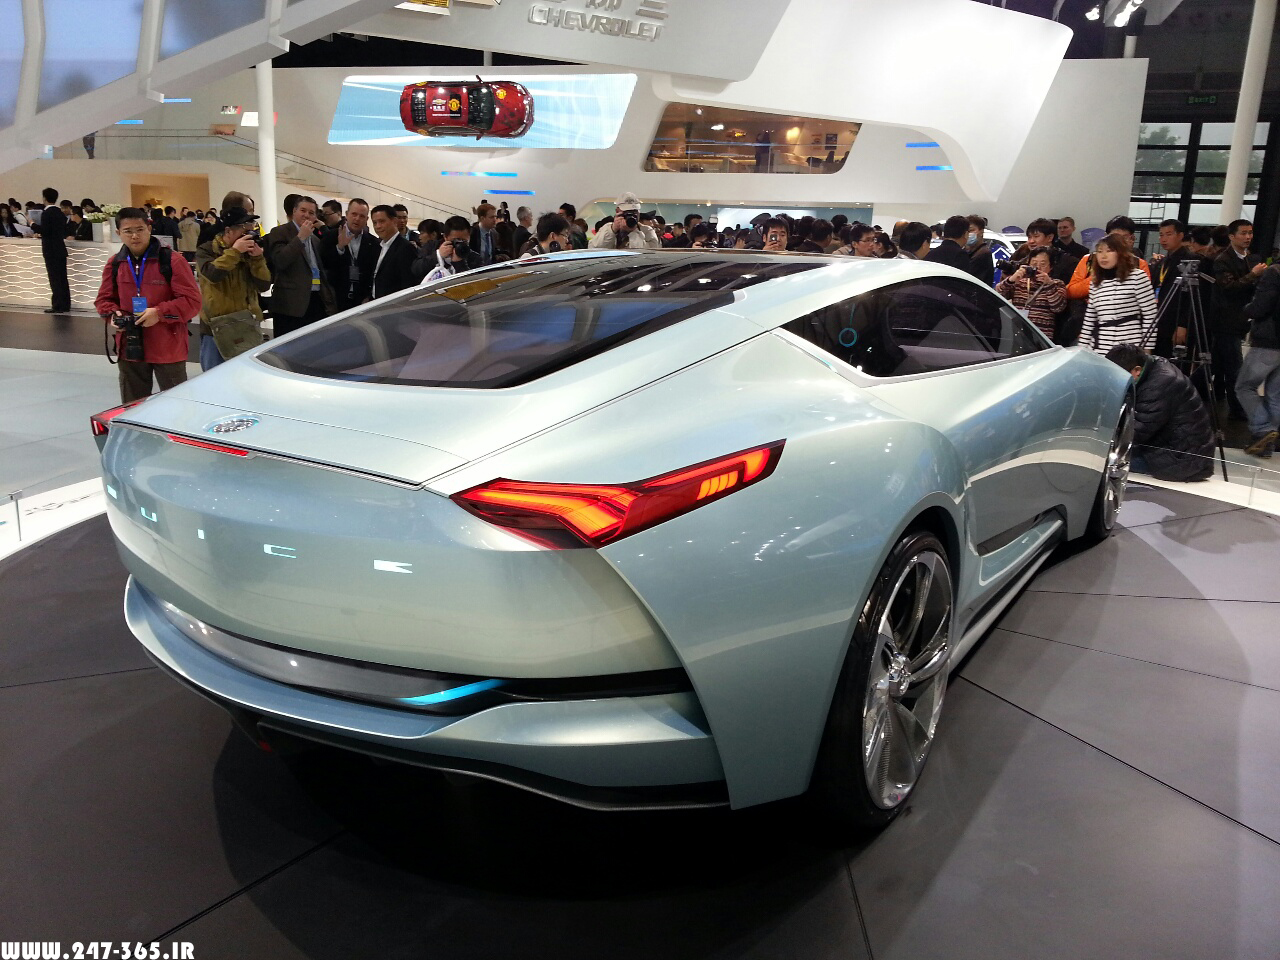 http://dl.247-365.ir/pic/automobile/buick_riviera_concept/Buick_Riviera_Concept_03.jpg